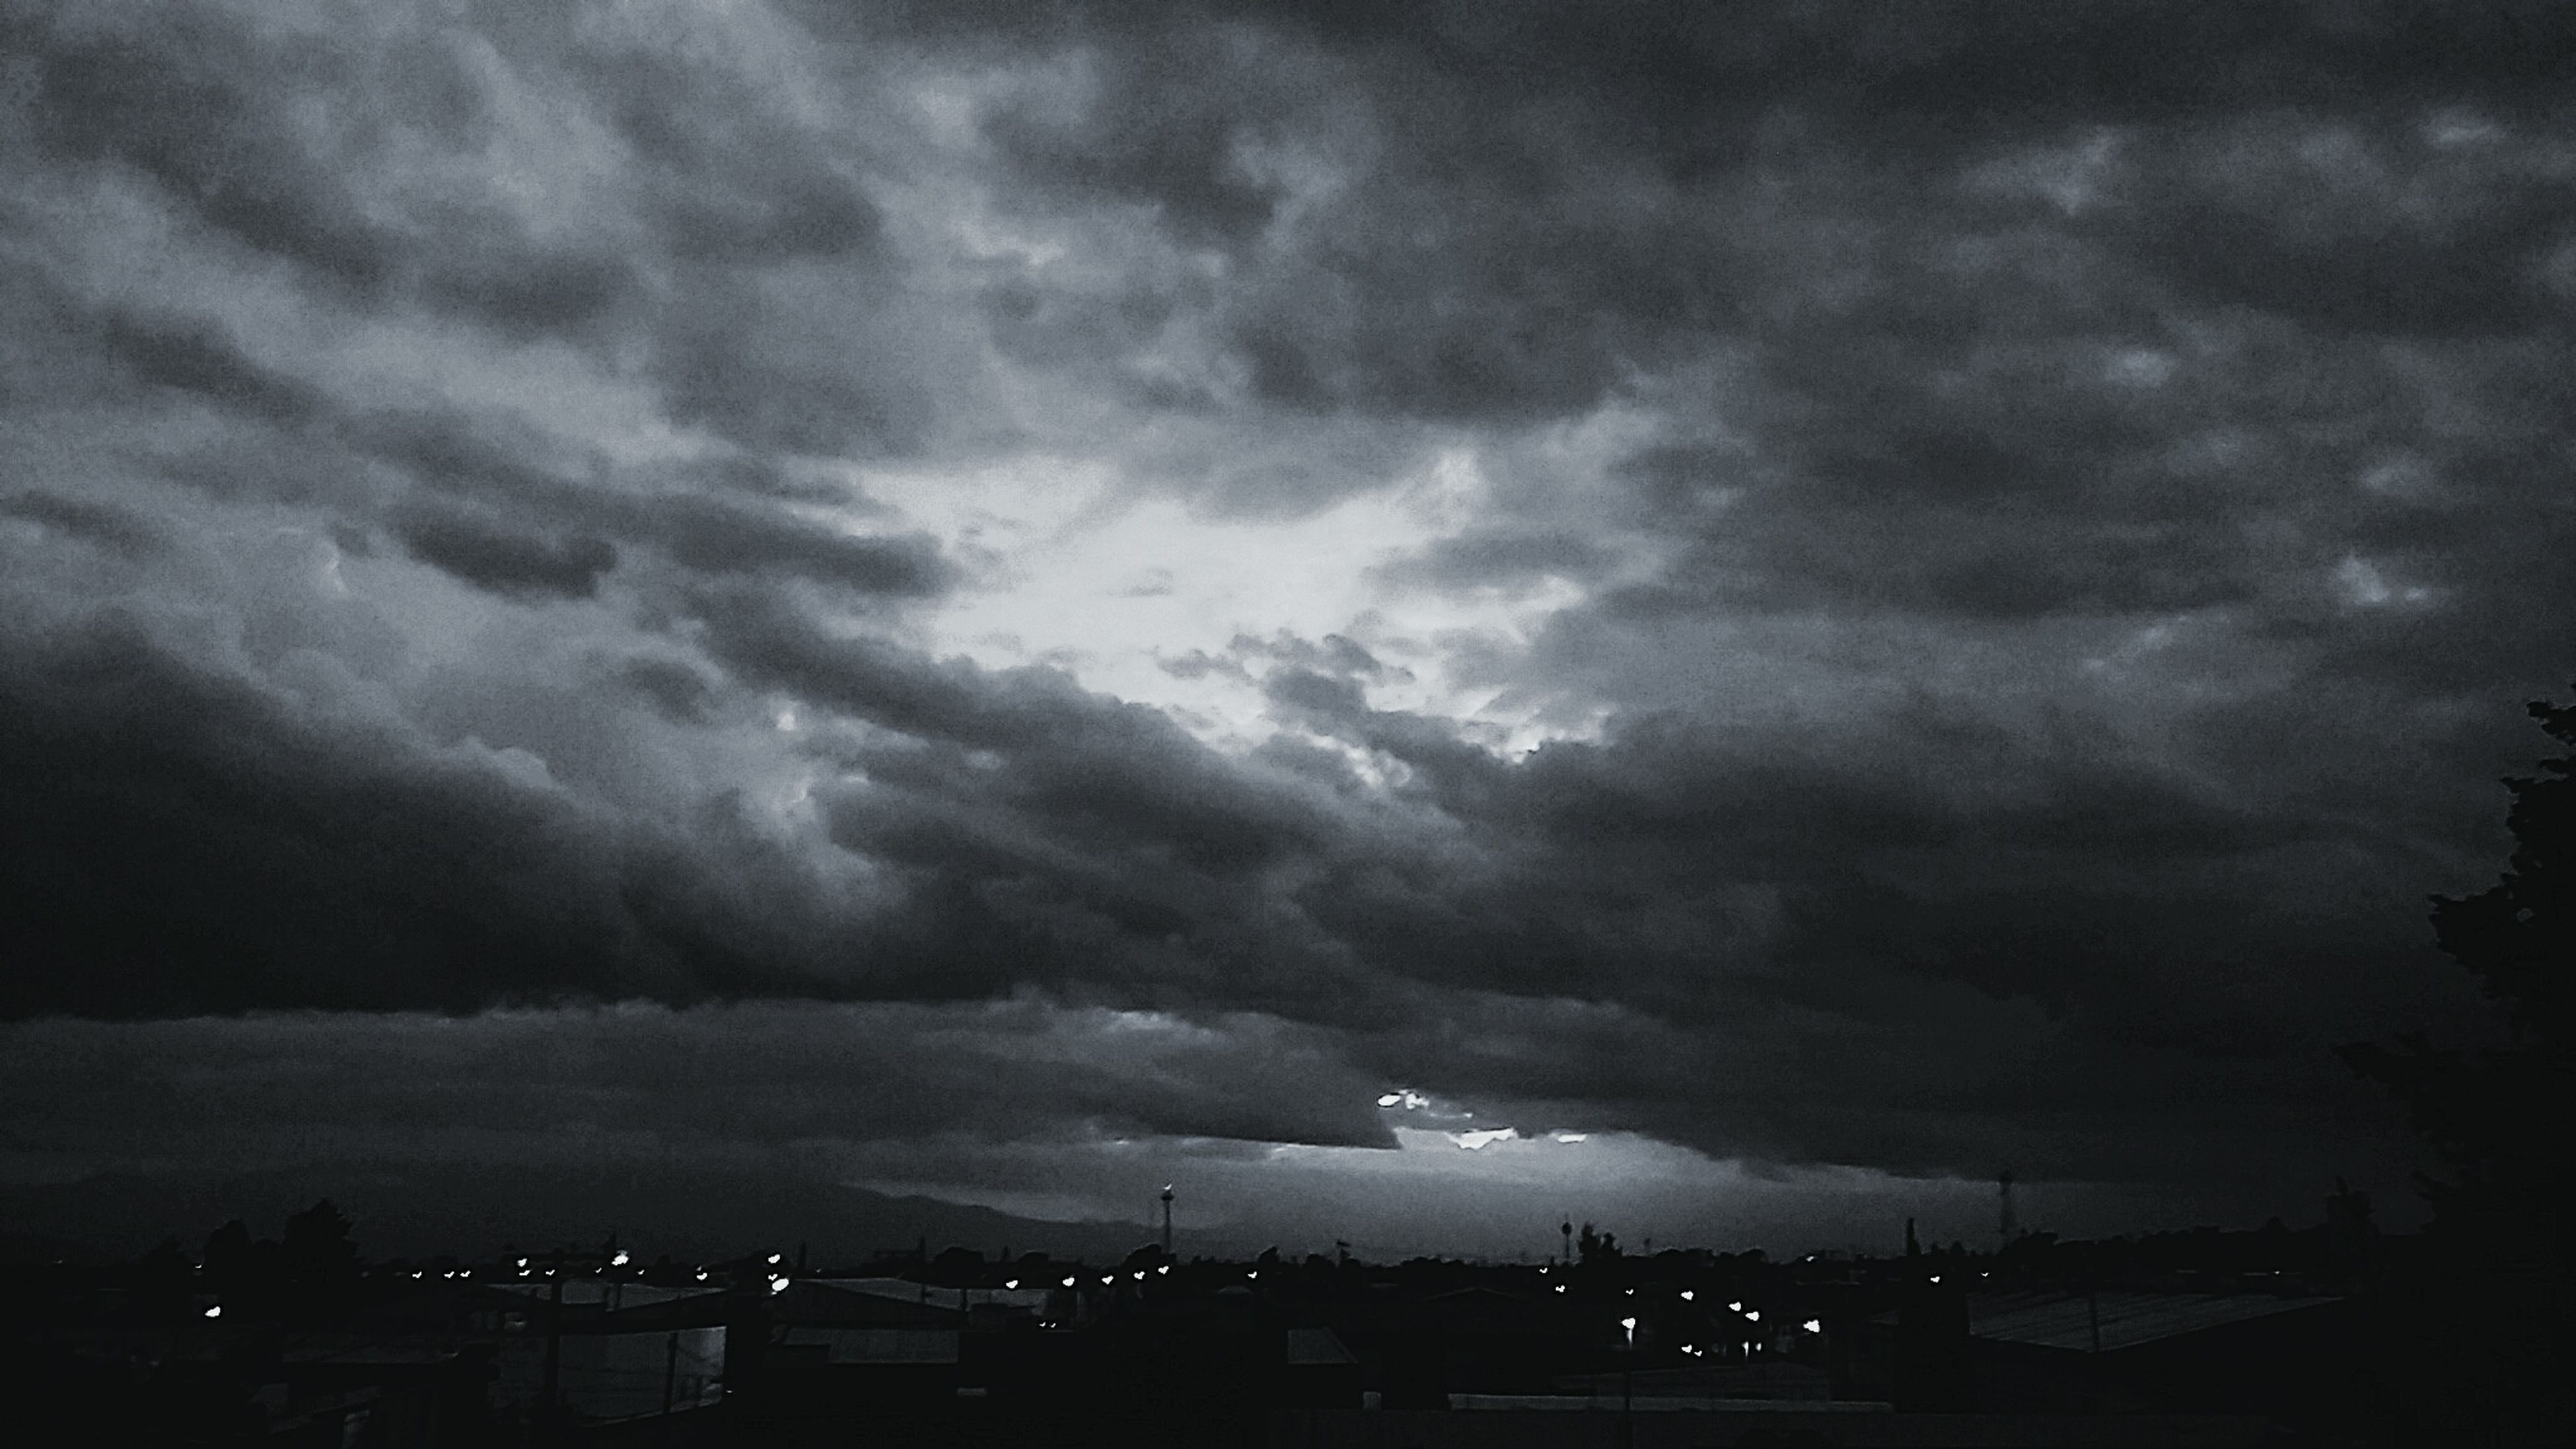 sky, cloud - sky, cloudy, storm cloud, weather, overcast, dusk, night, dramatic sky, illuminated, nature, cloud, city, outdoors, beauty in nature, cloudscape, scenics, dark, no people, tranquility, tranquil scene, landscape